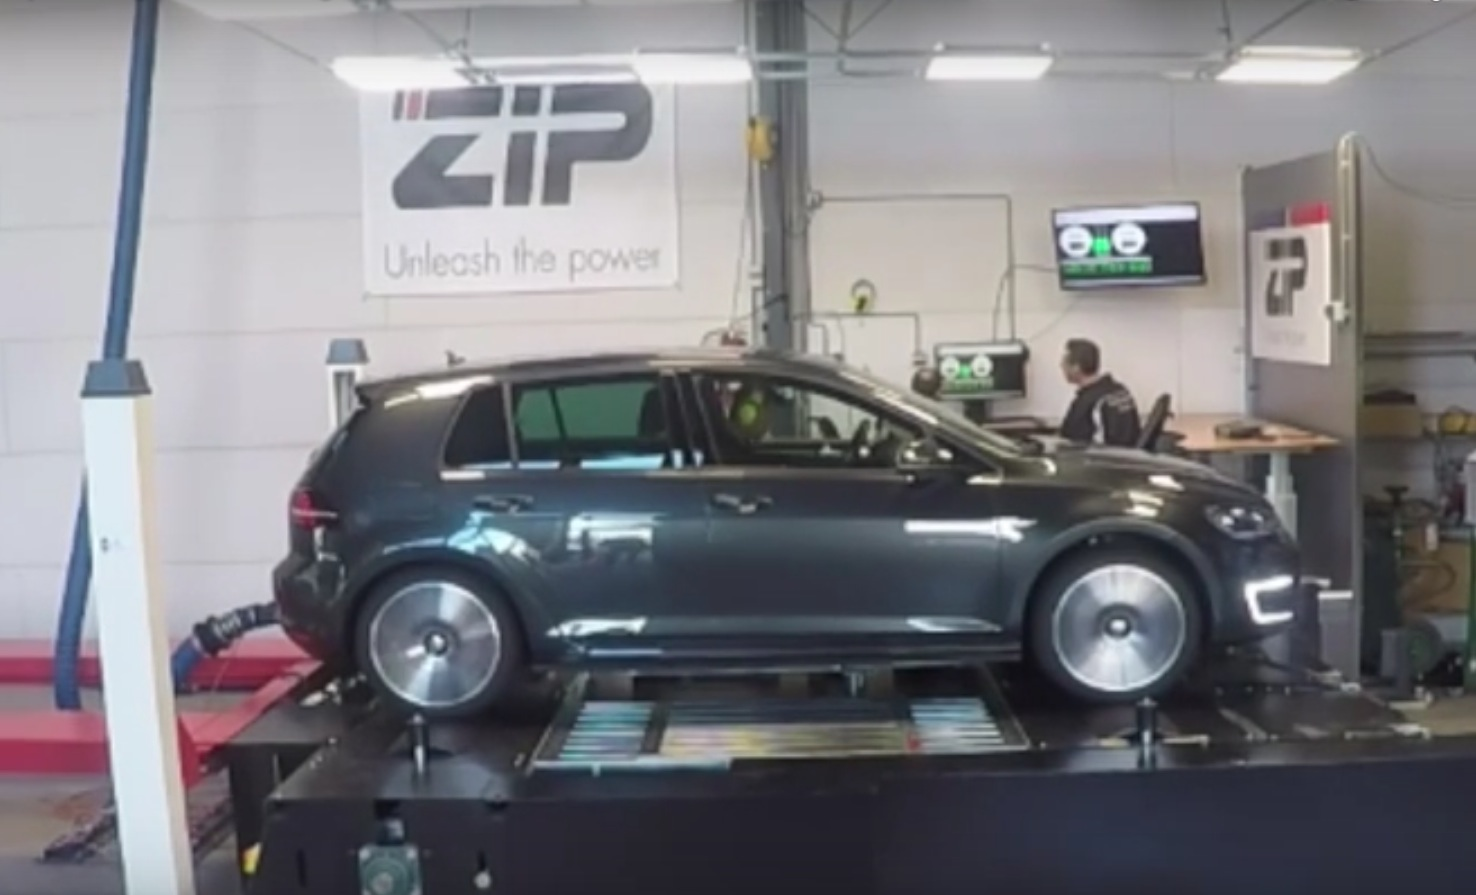 vw golf gte engine tuned to 231 hp proving plug in. Black Bedroom Furniture Sets. Home Design Ideas